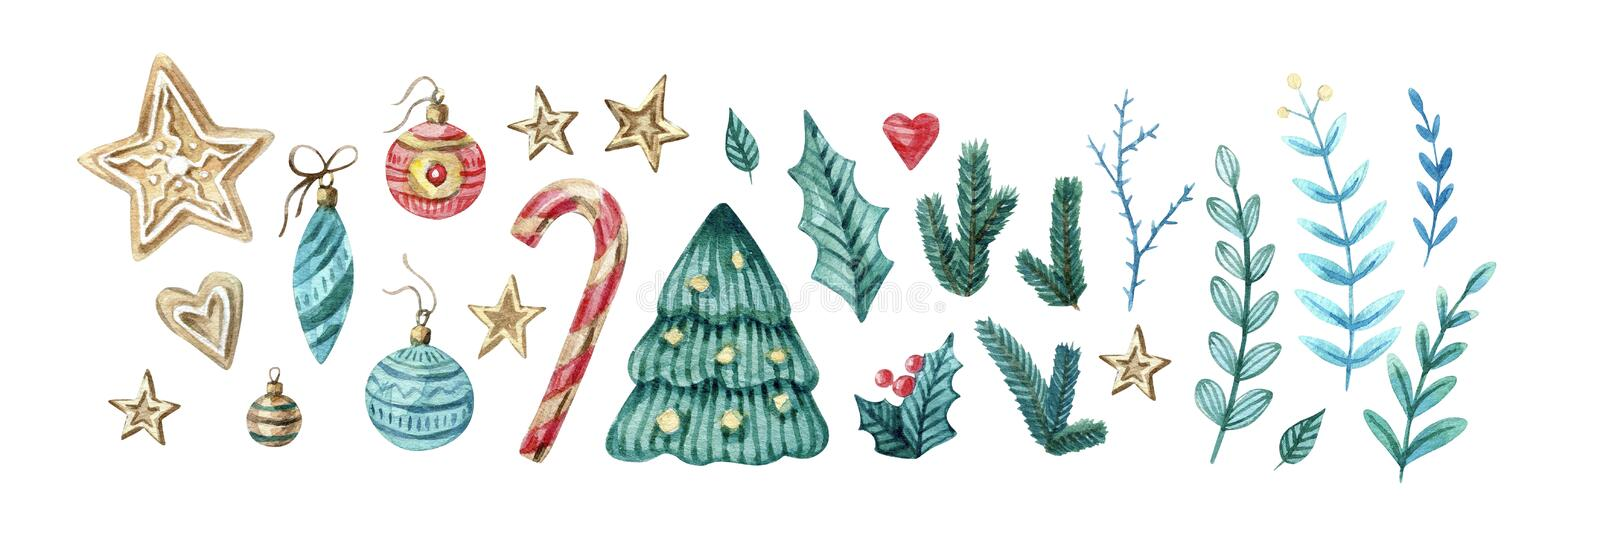 Watercolor set of Christmas and new eyear elements. Cute twigs, candies, cukies, stars, mistletoe, decorations royalty free illustration